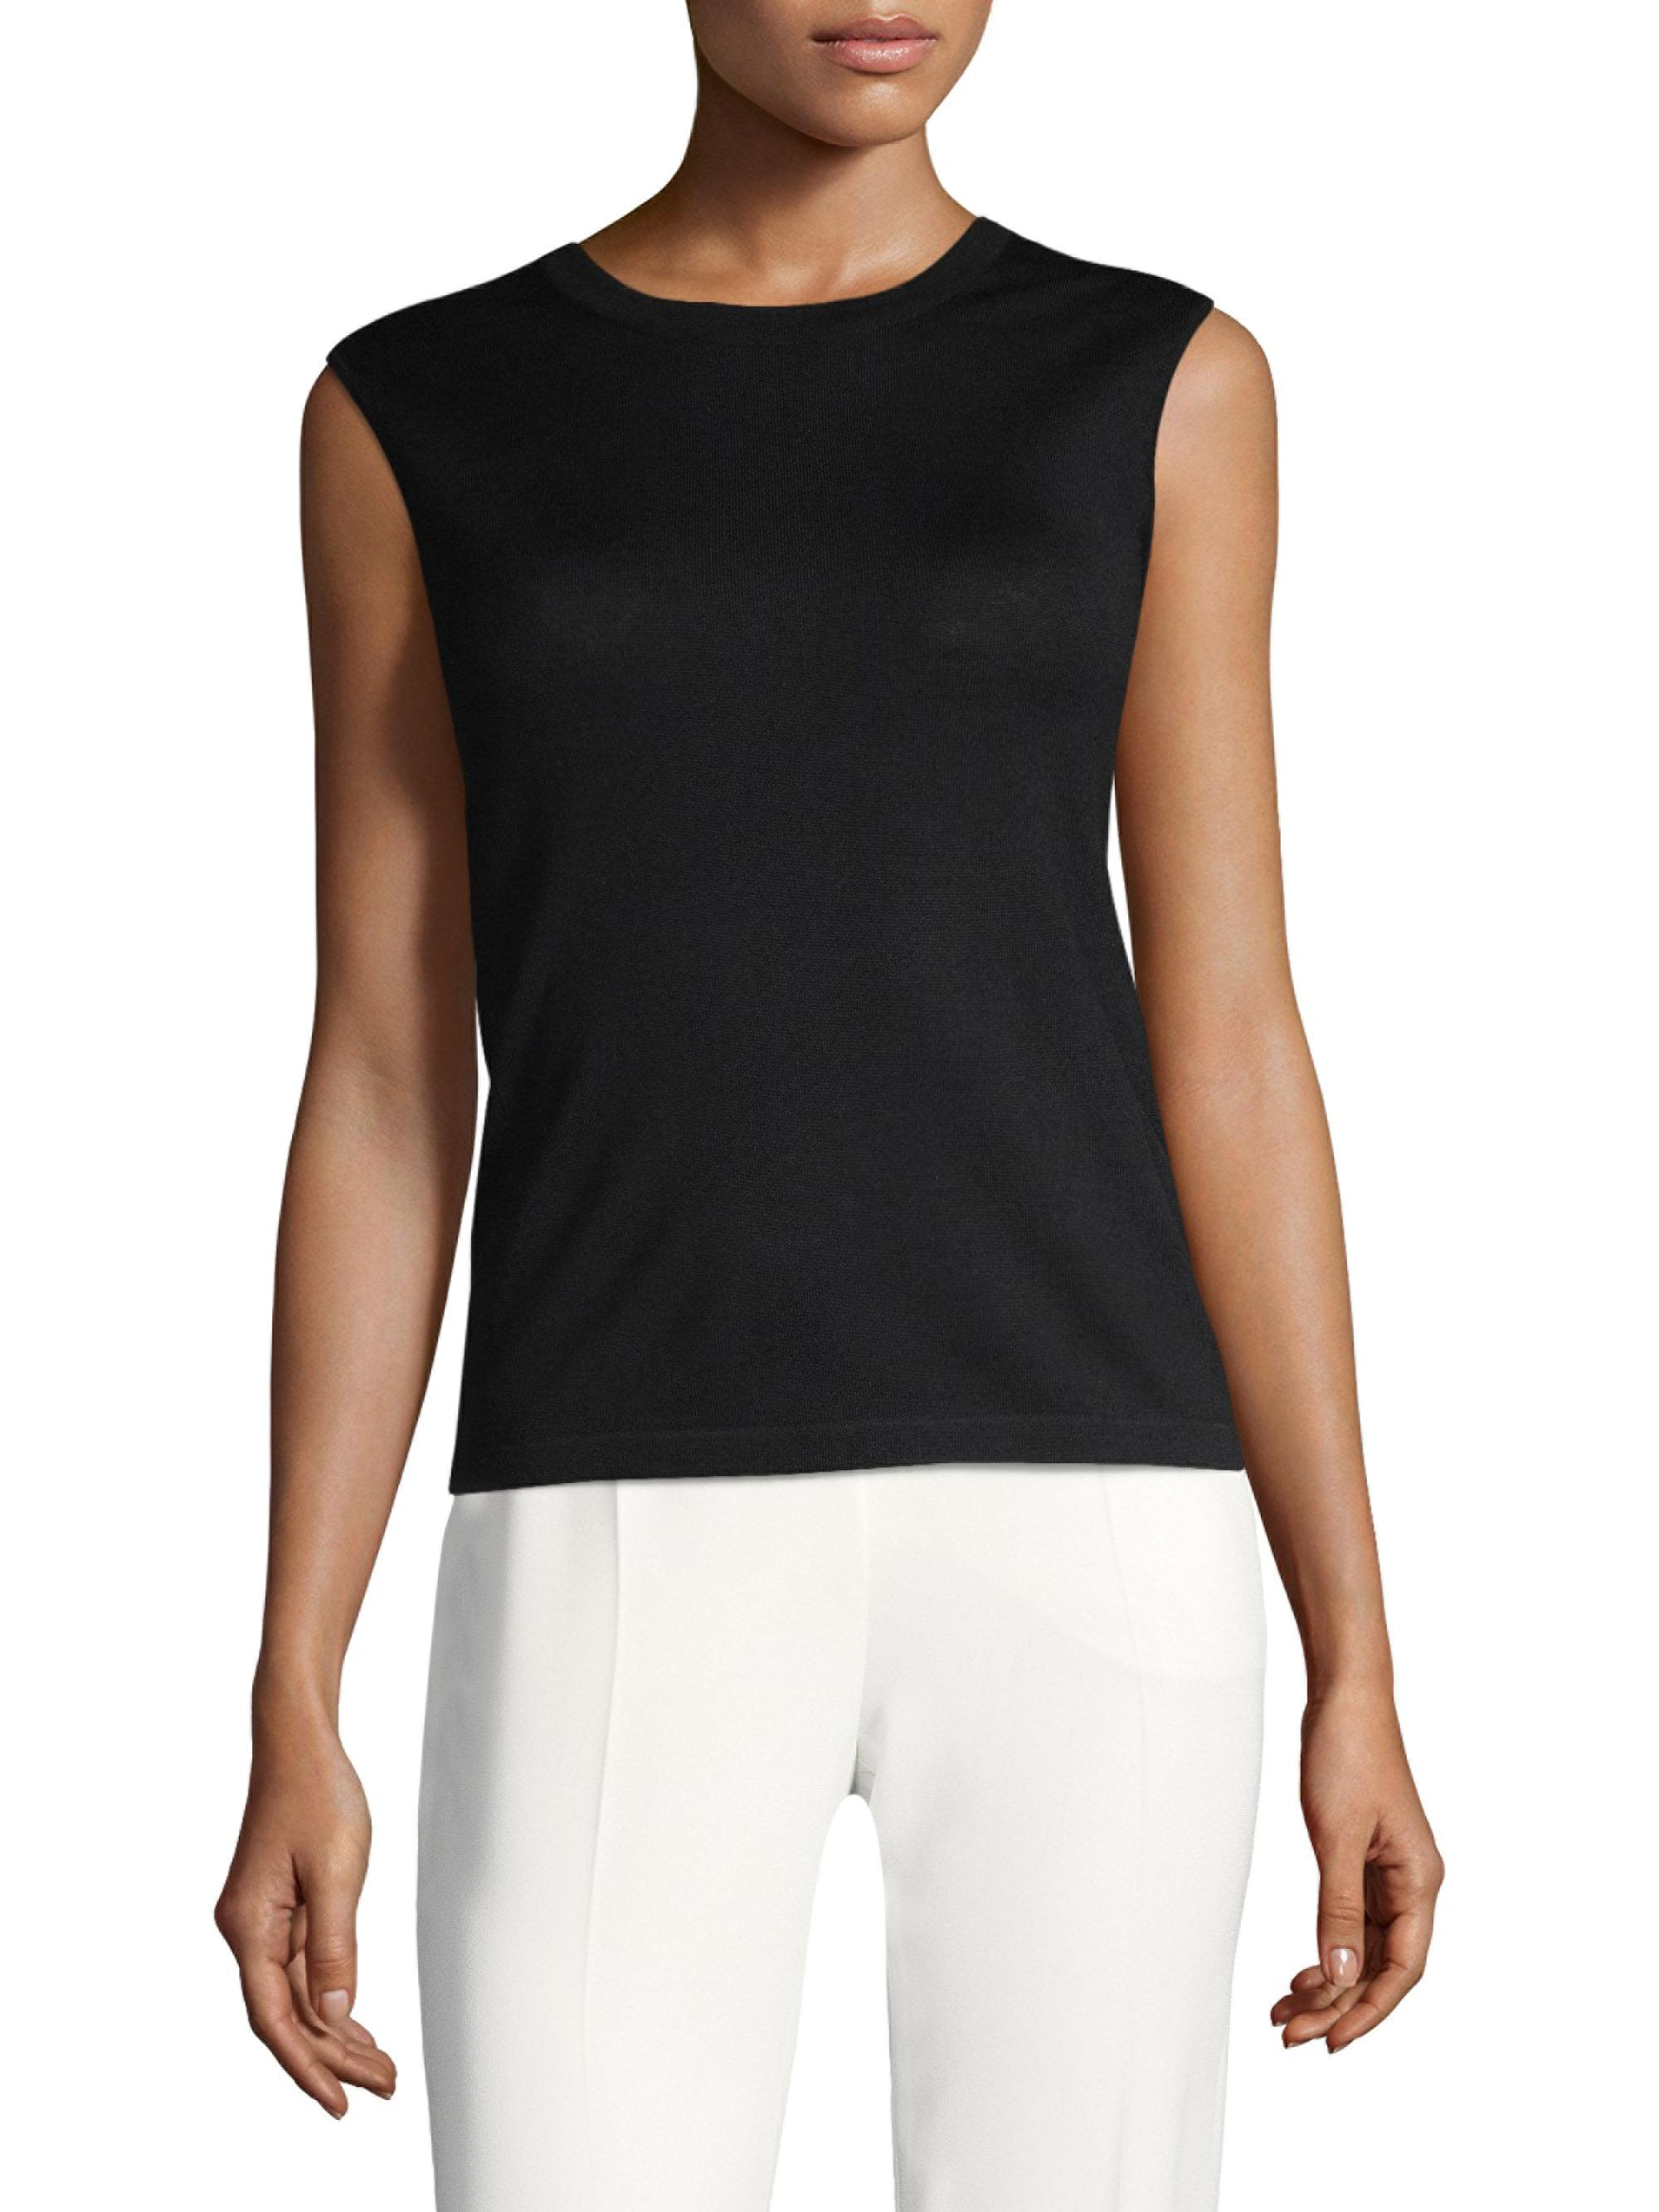 View Sale Online Discount Looking For Escada Sleeveless Wool-Blend Top New jwyzFPna